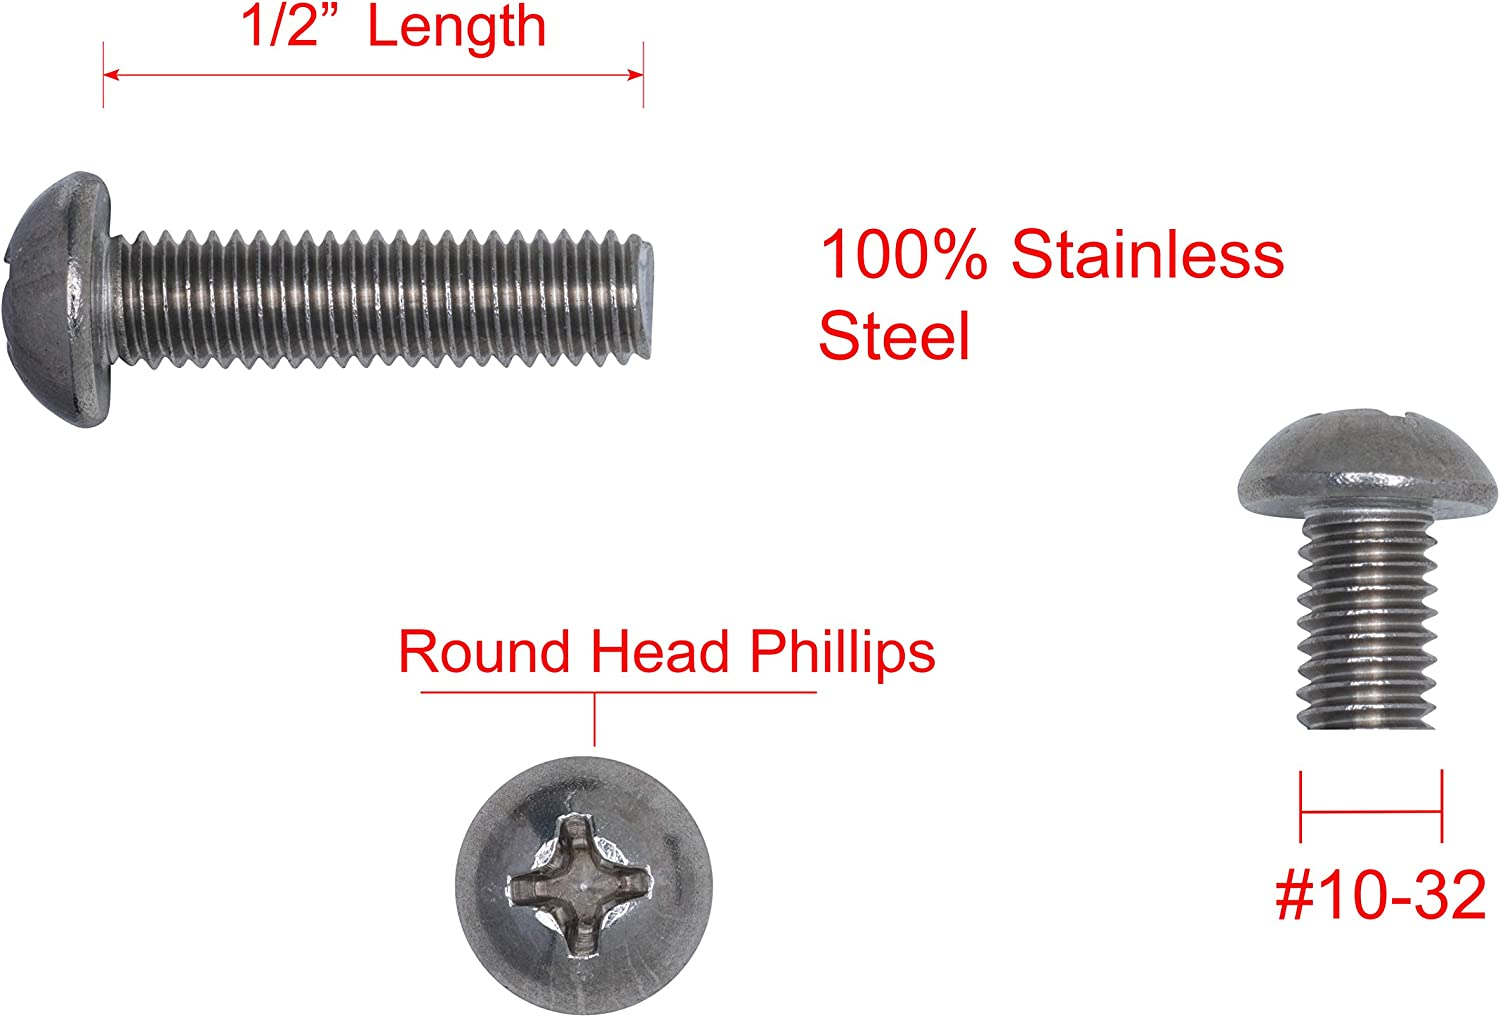 Fine Thread 100pc by Bolt Dropper 18-8 Stainless Steel #10-32 X 1//2 Stainless Phillips Round Head Machine Screw, 304